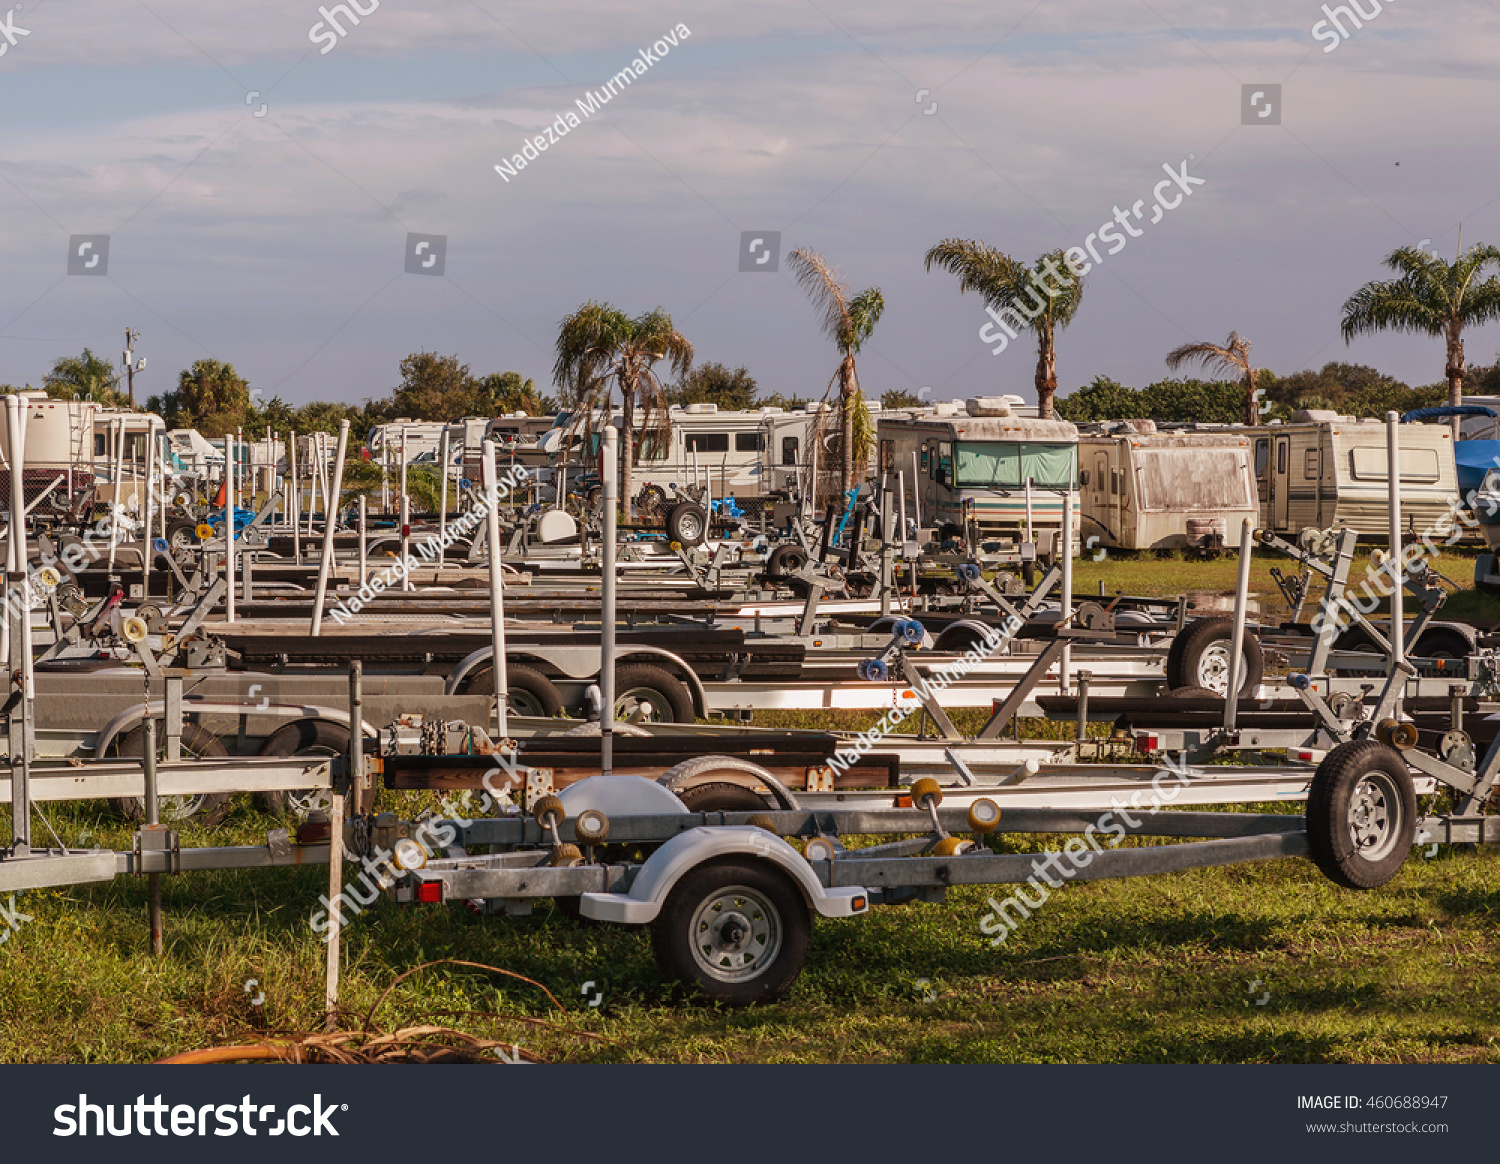 Old Cars Trucks Boats Sale Junkyard Stock Photo (Safe to Use ...